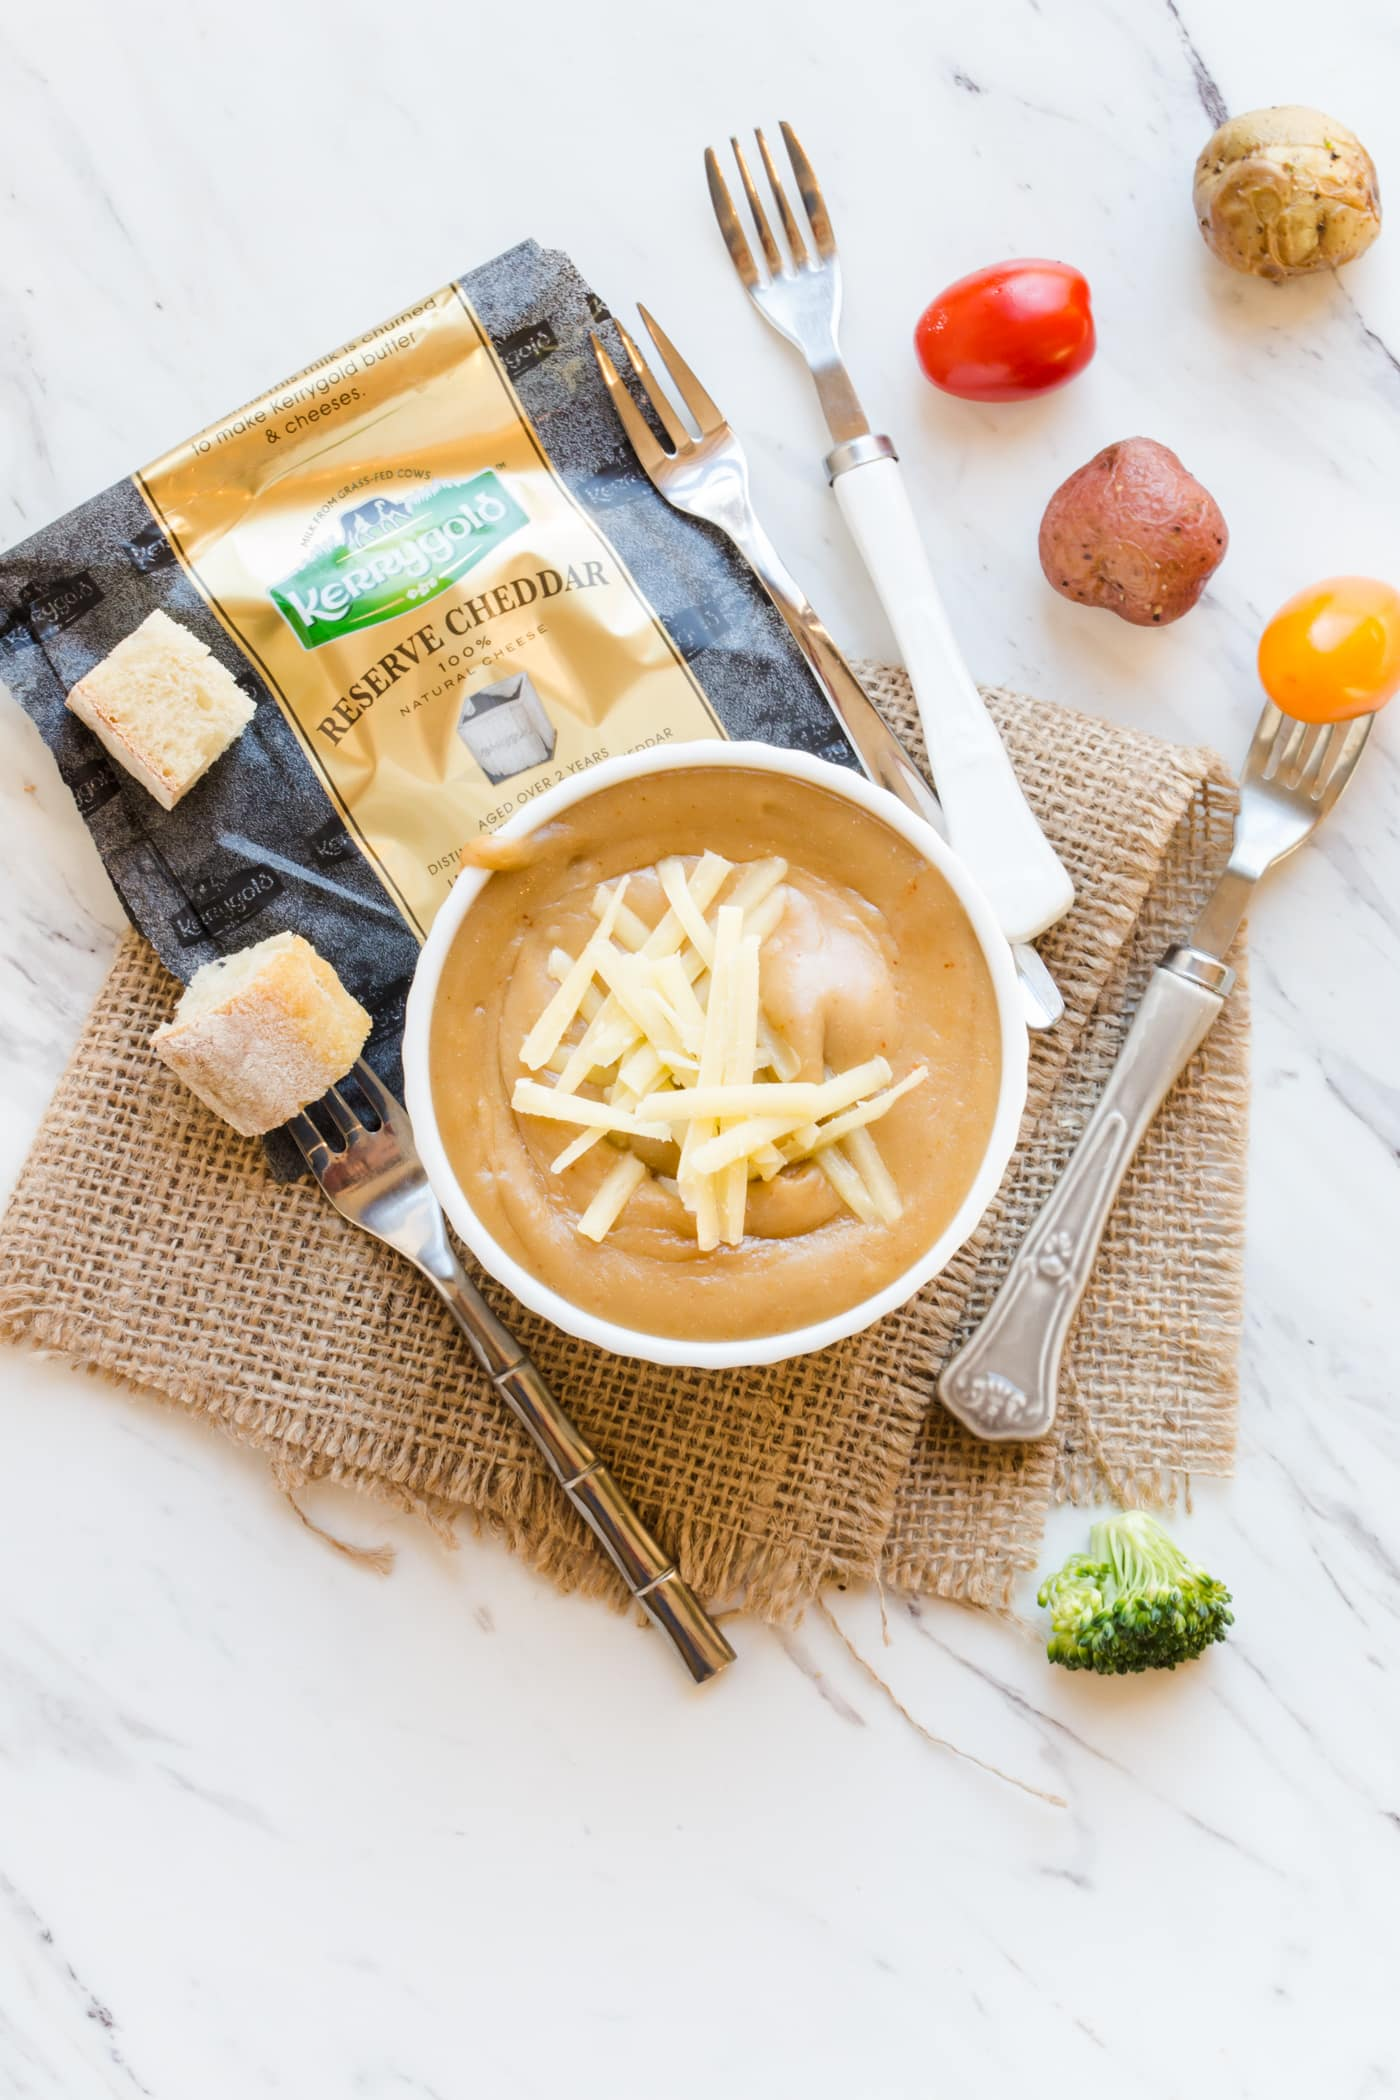 Add some Irish flavor to your St. Patrick's Day party with this Irish Cheddar and Stout Fondue!